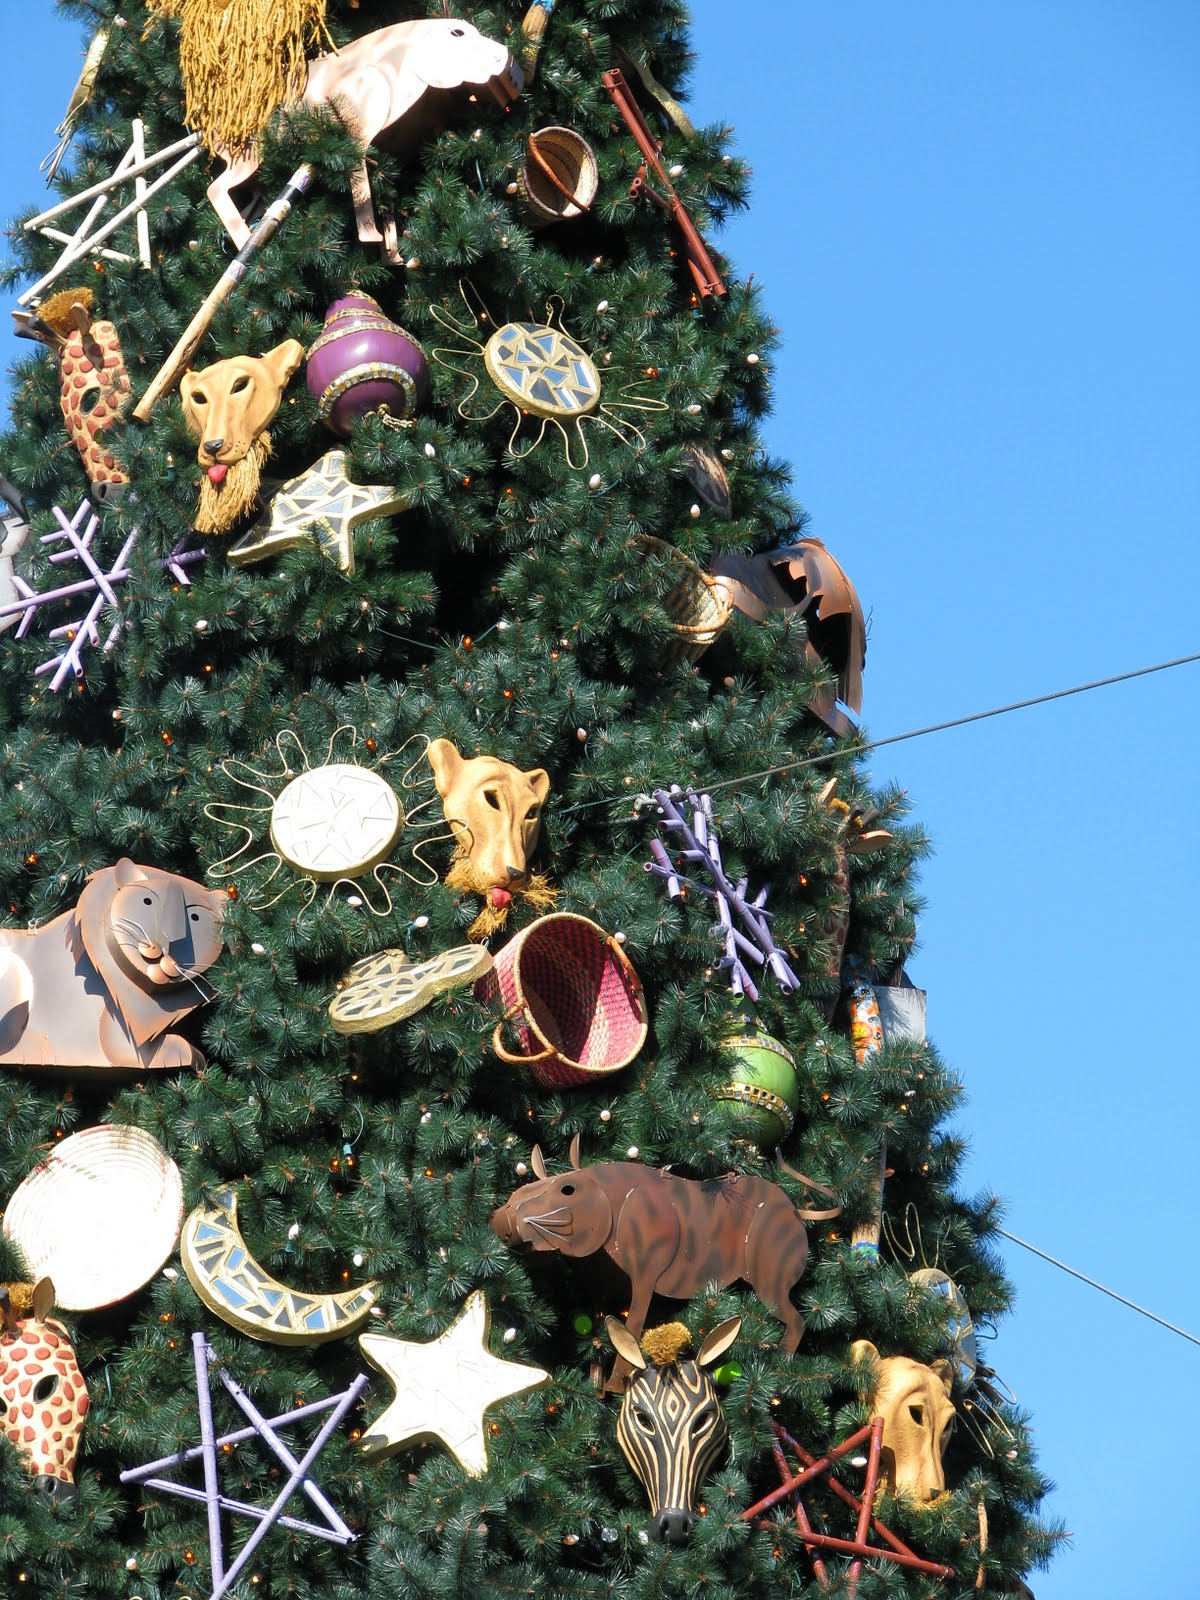 if you are able to visit disney world this christmas holiday season take the time to notice the decorations that adorn the remarkable trees that you will - Disney Christmas Trees